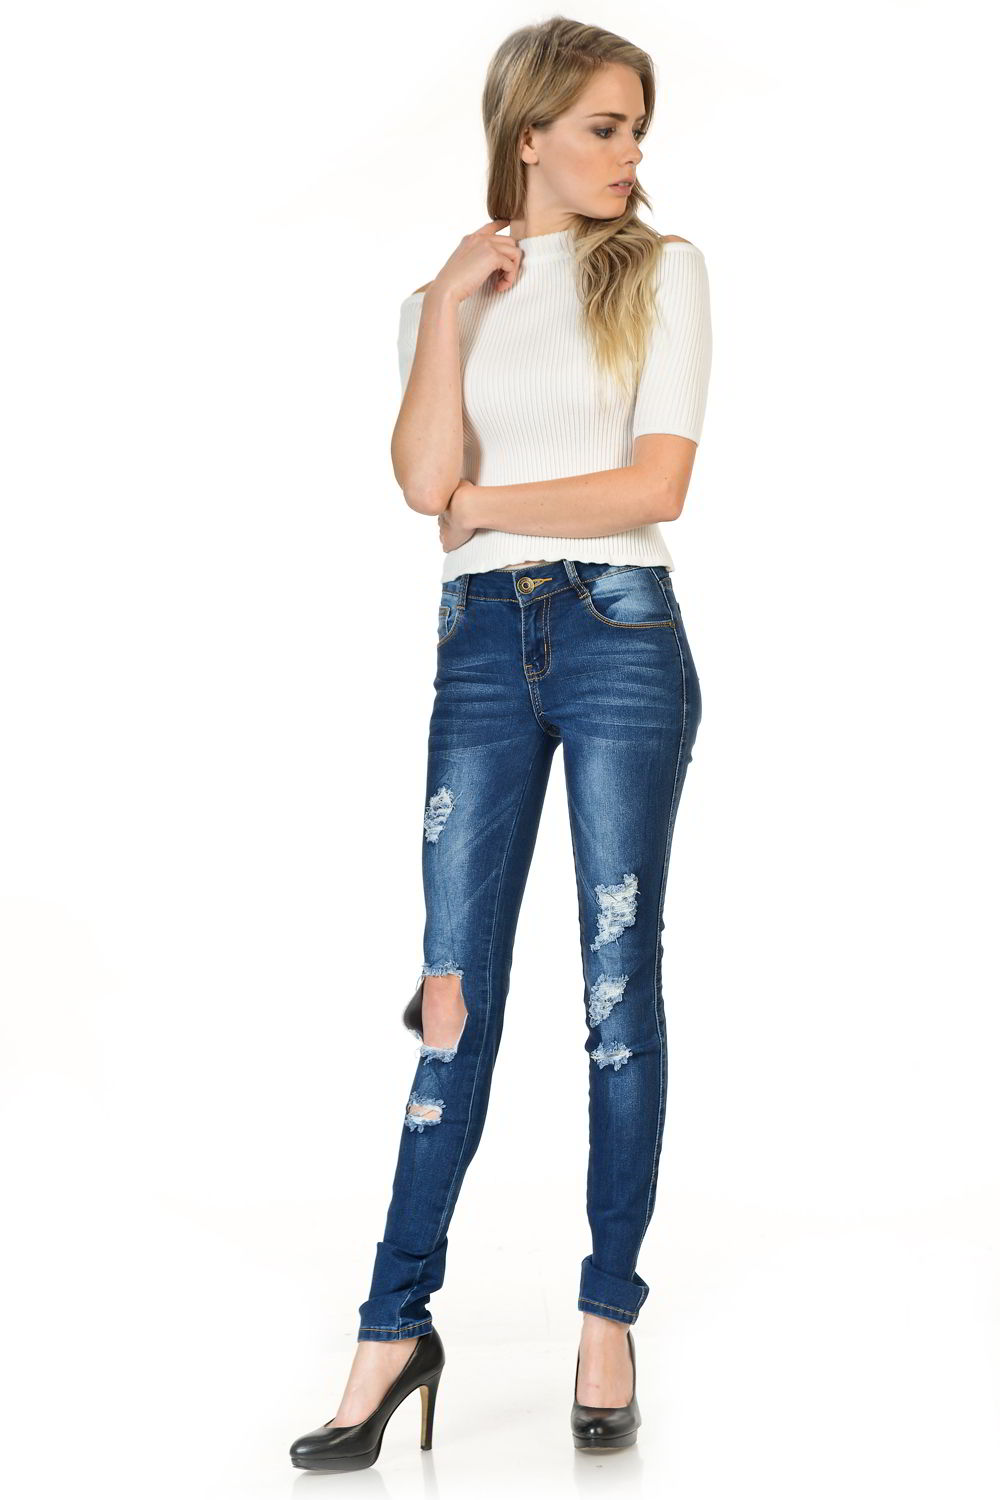 Sweet Look Premium Edition Women's Jeans - Push Up - Style WG448-R